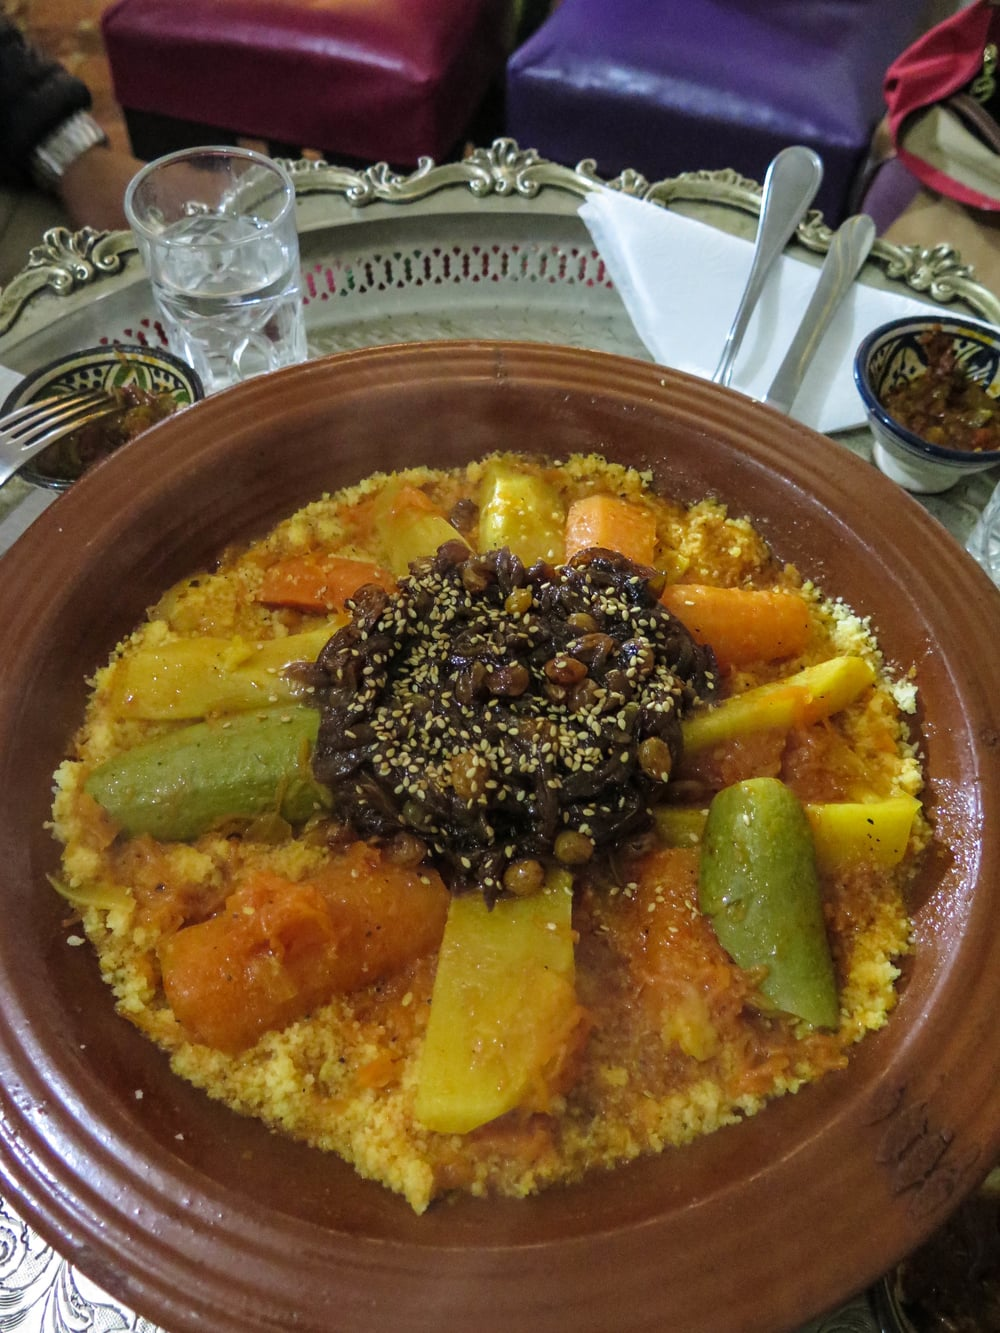 Couscous with veggies and carmelized onions